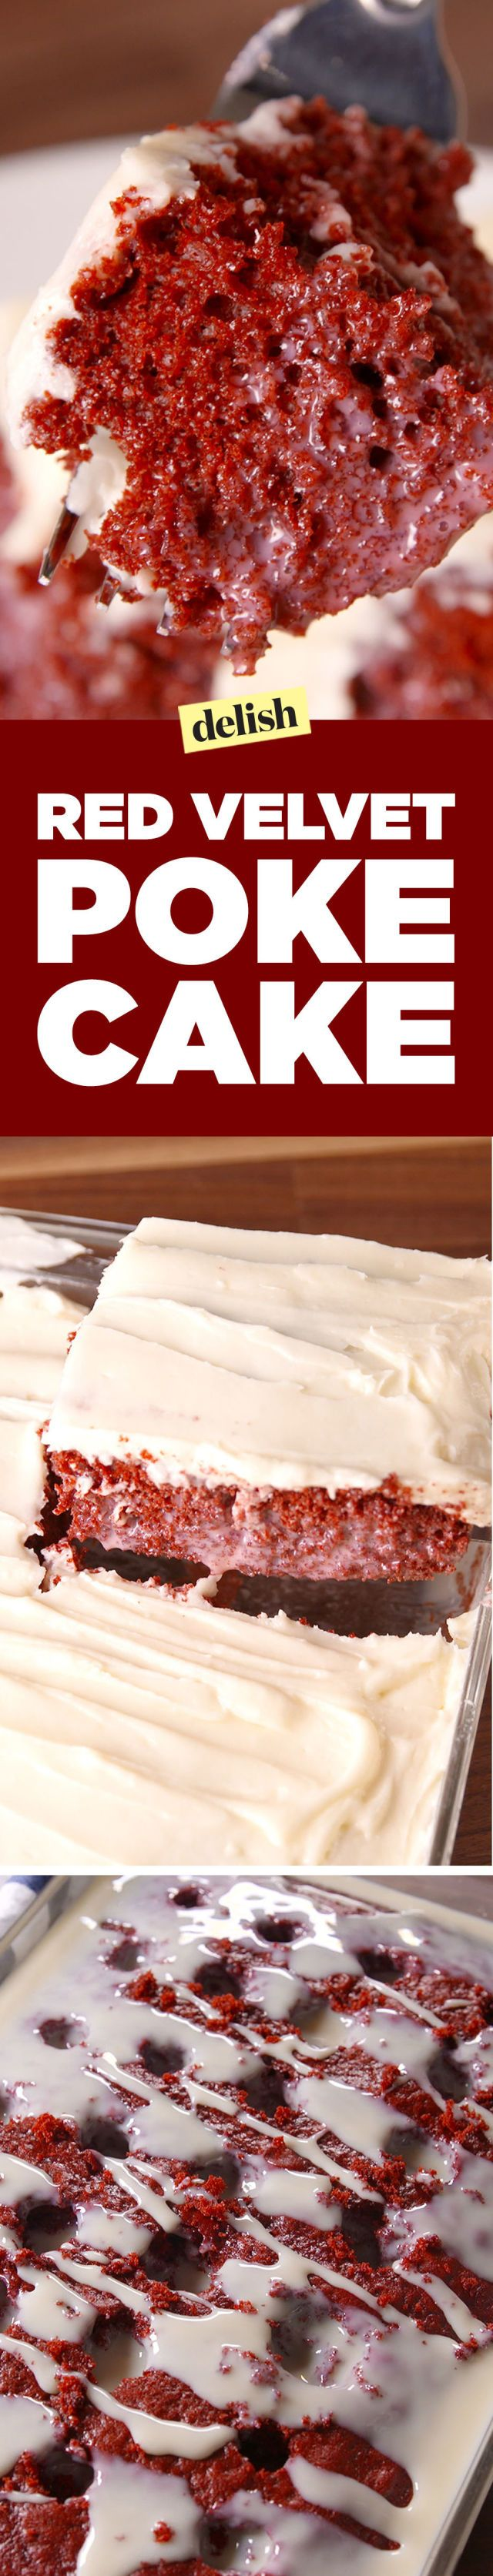 Red Velvet Poke Cake Pinterest